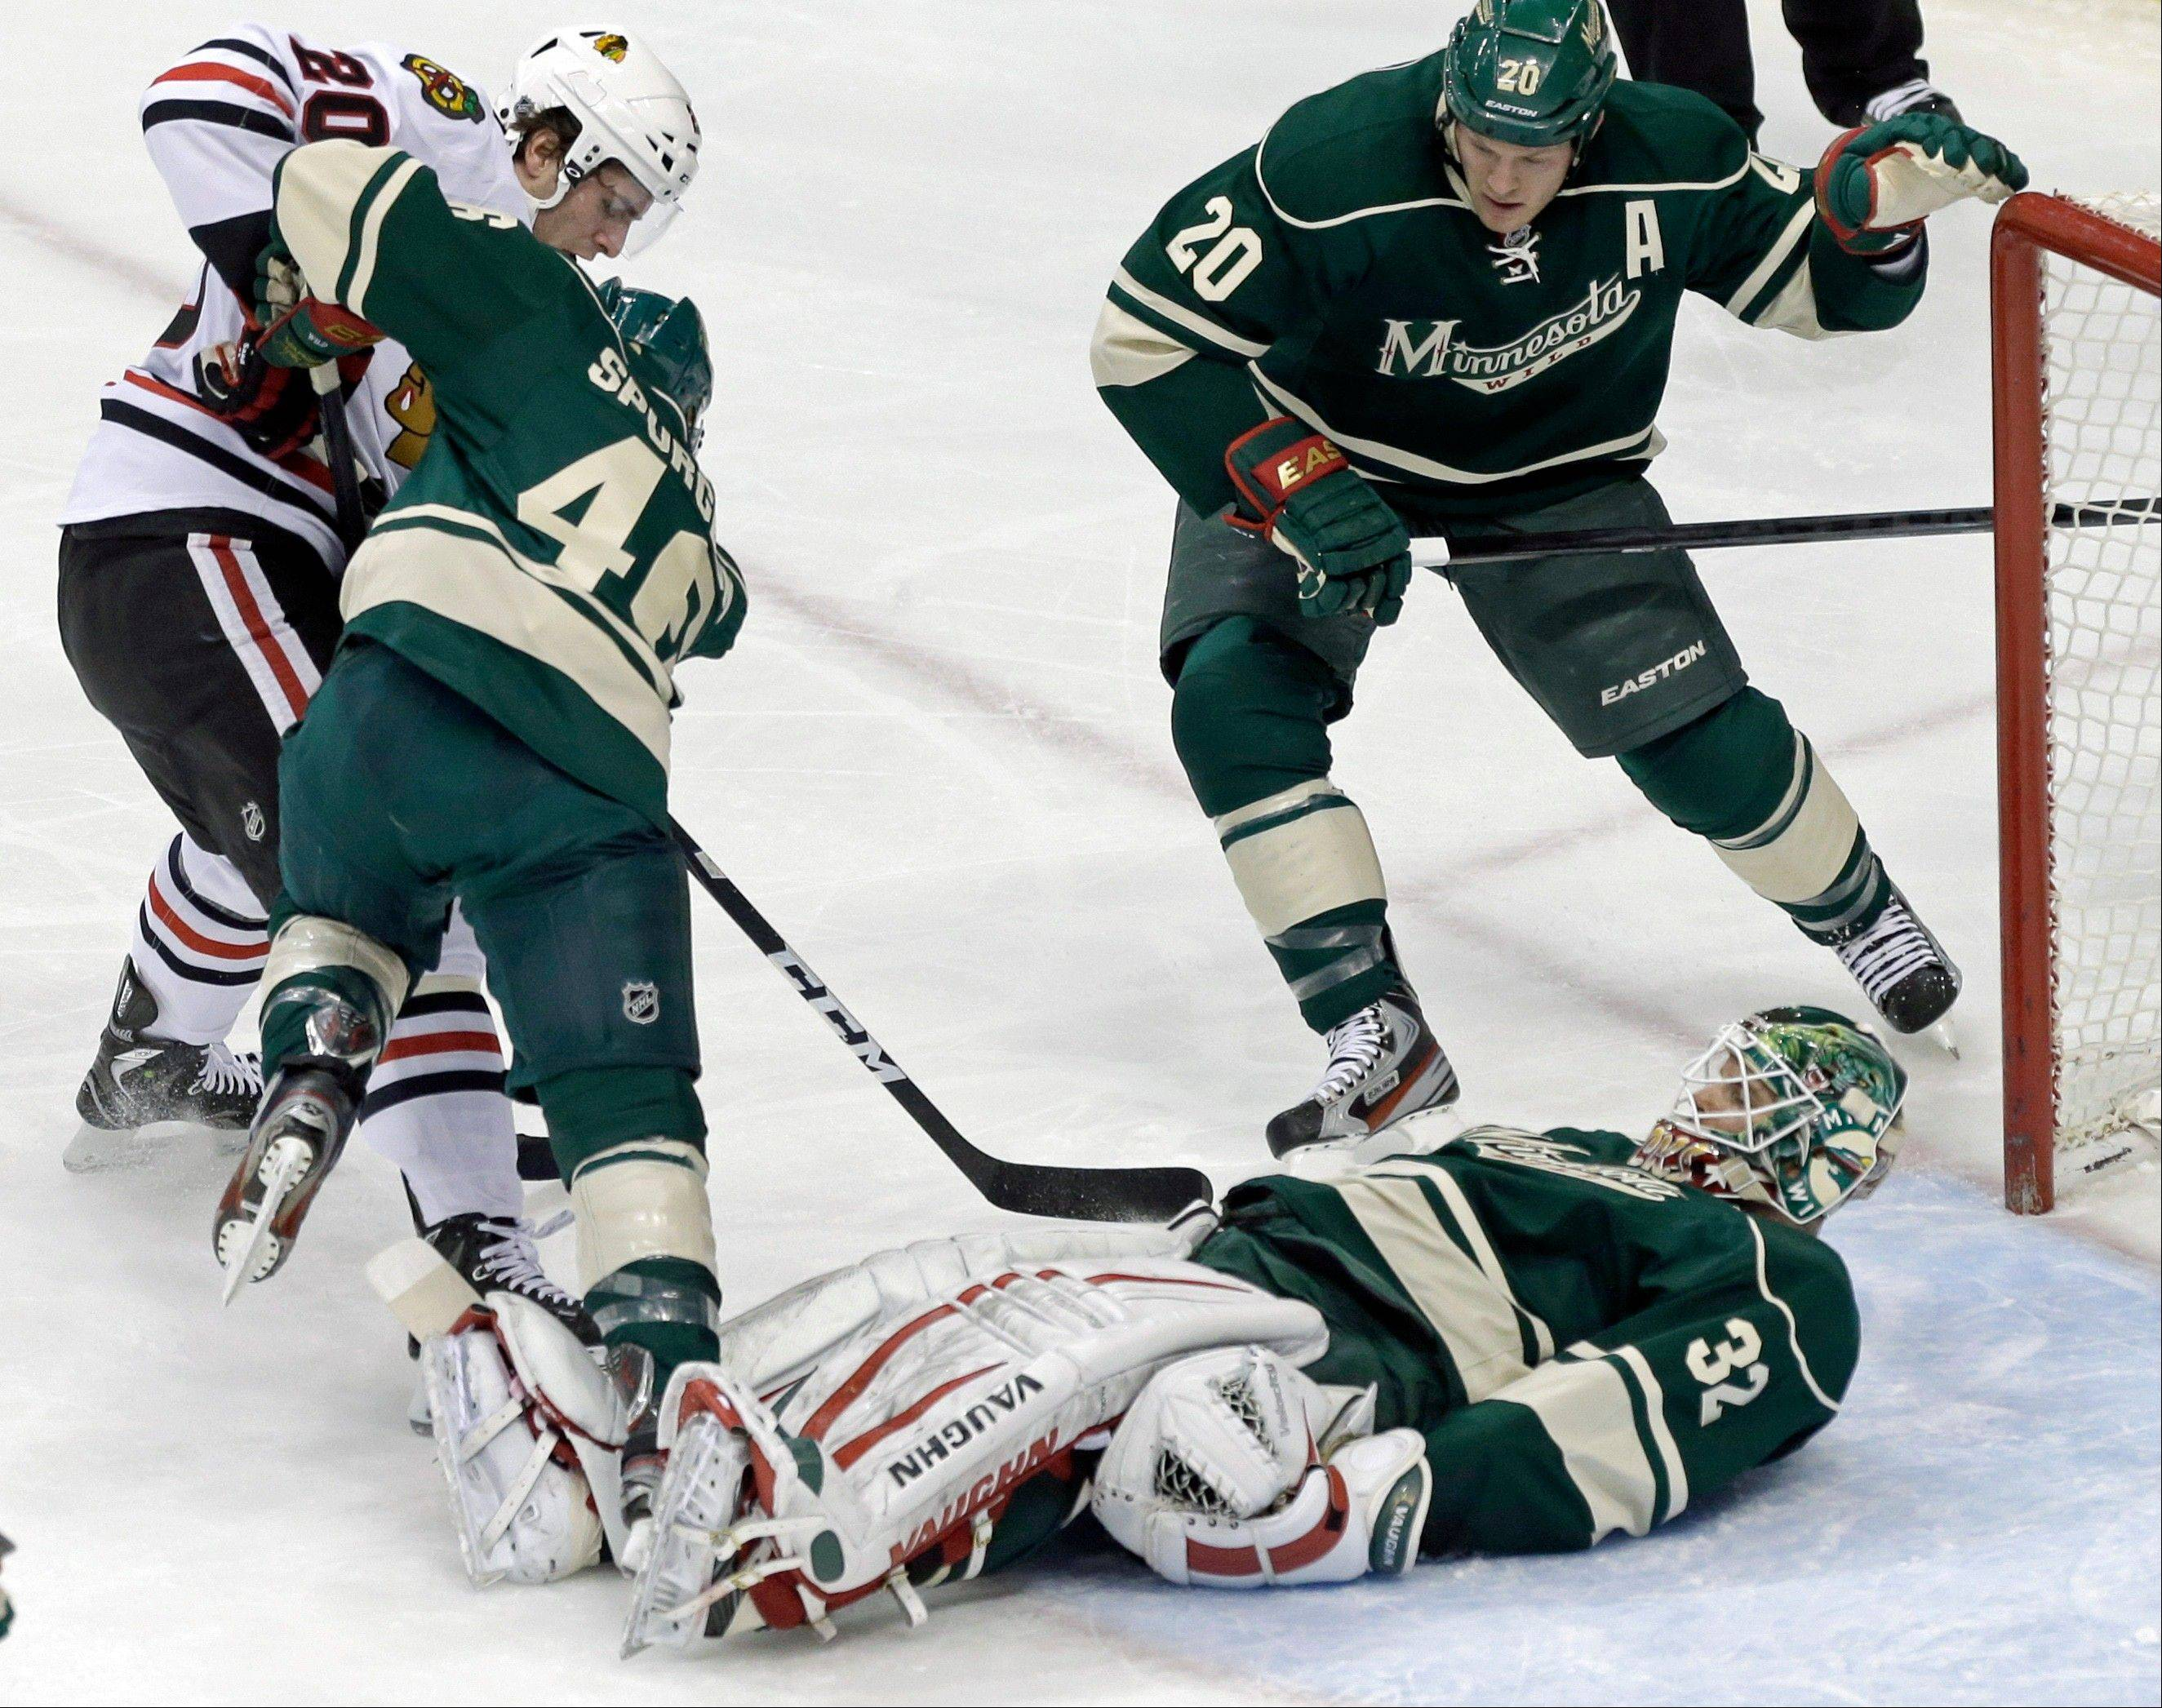 MinnesostaWild's Jared Spurgeon 46) tries to keep Chicago Blackhawks' Brandon Saad, left, away from the puck and fallen Wild goalie Niklas Backstrom of Finland in the first period of an NHL hockey game Tuesday, April 9, 2013 in St. Paul.